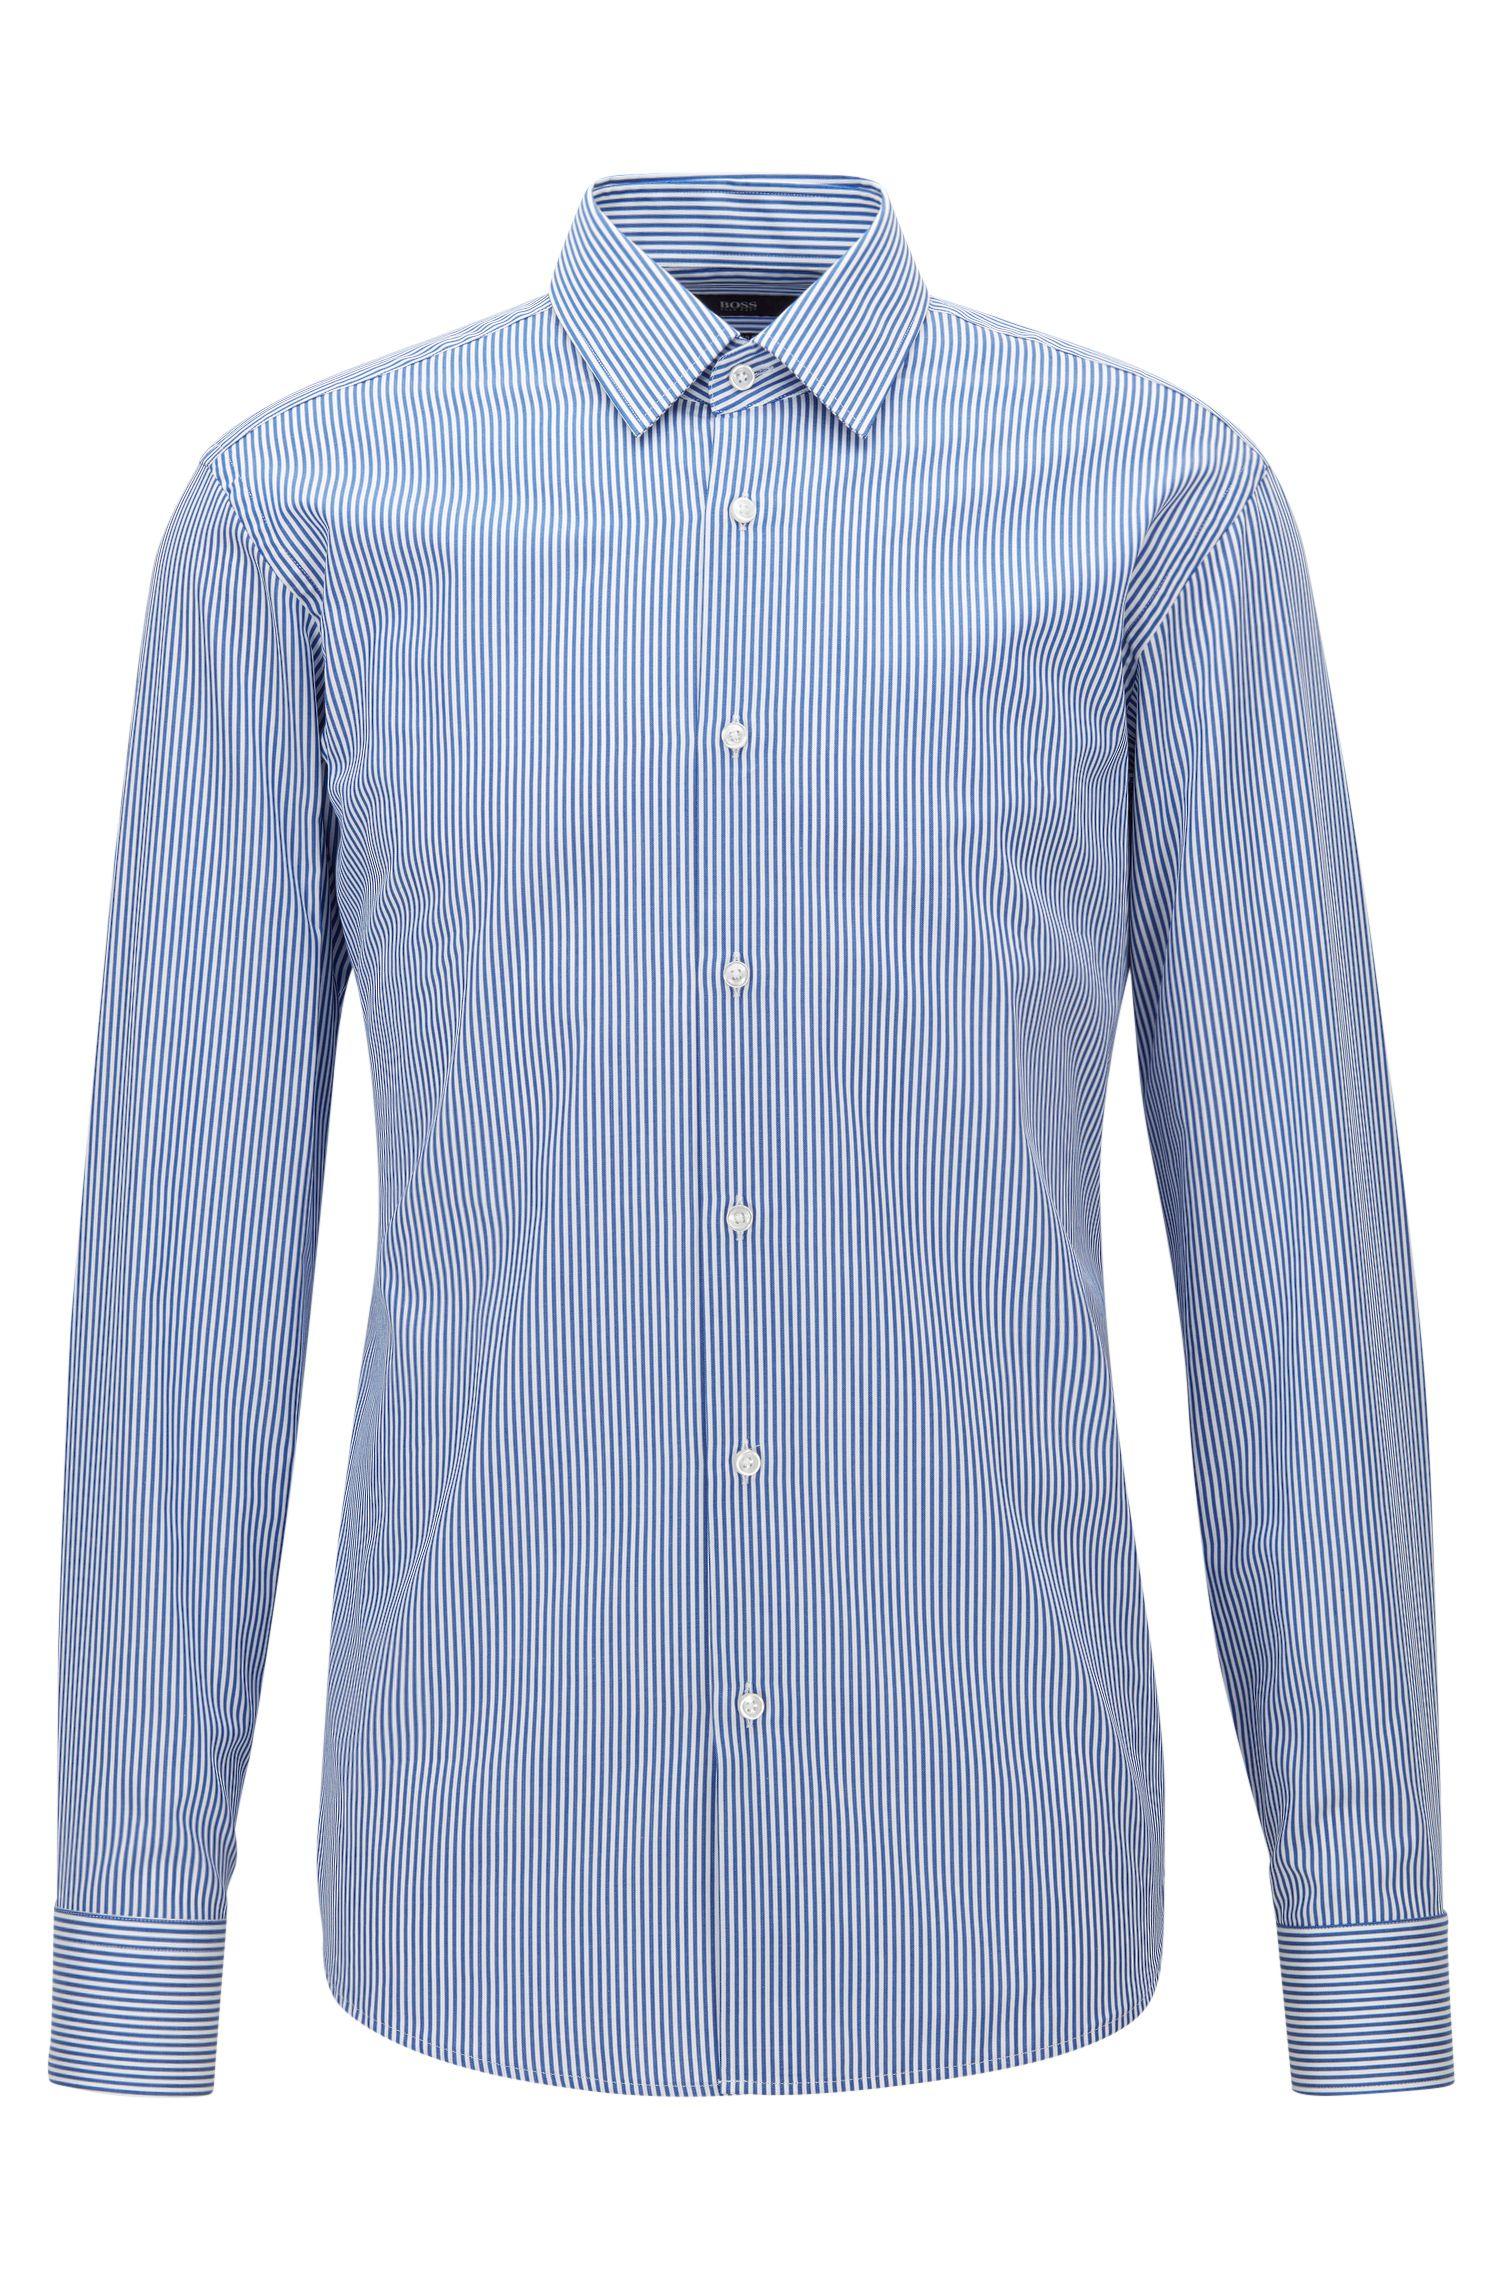 Regular-fit shirt in striped cotton twill